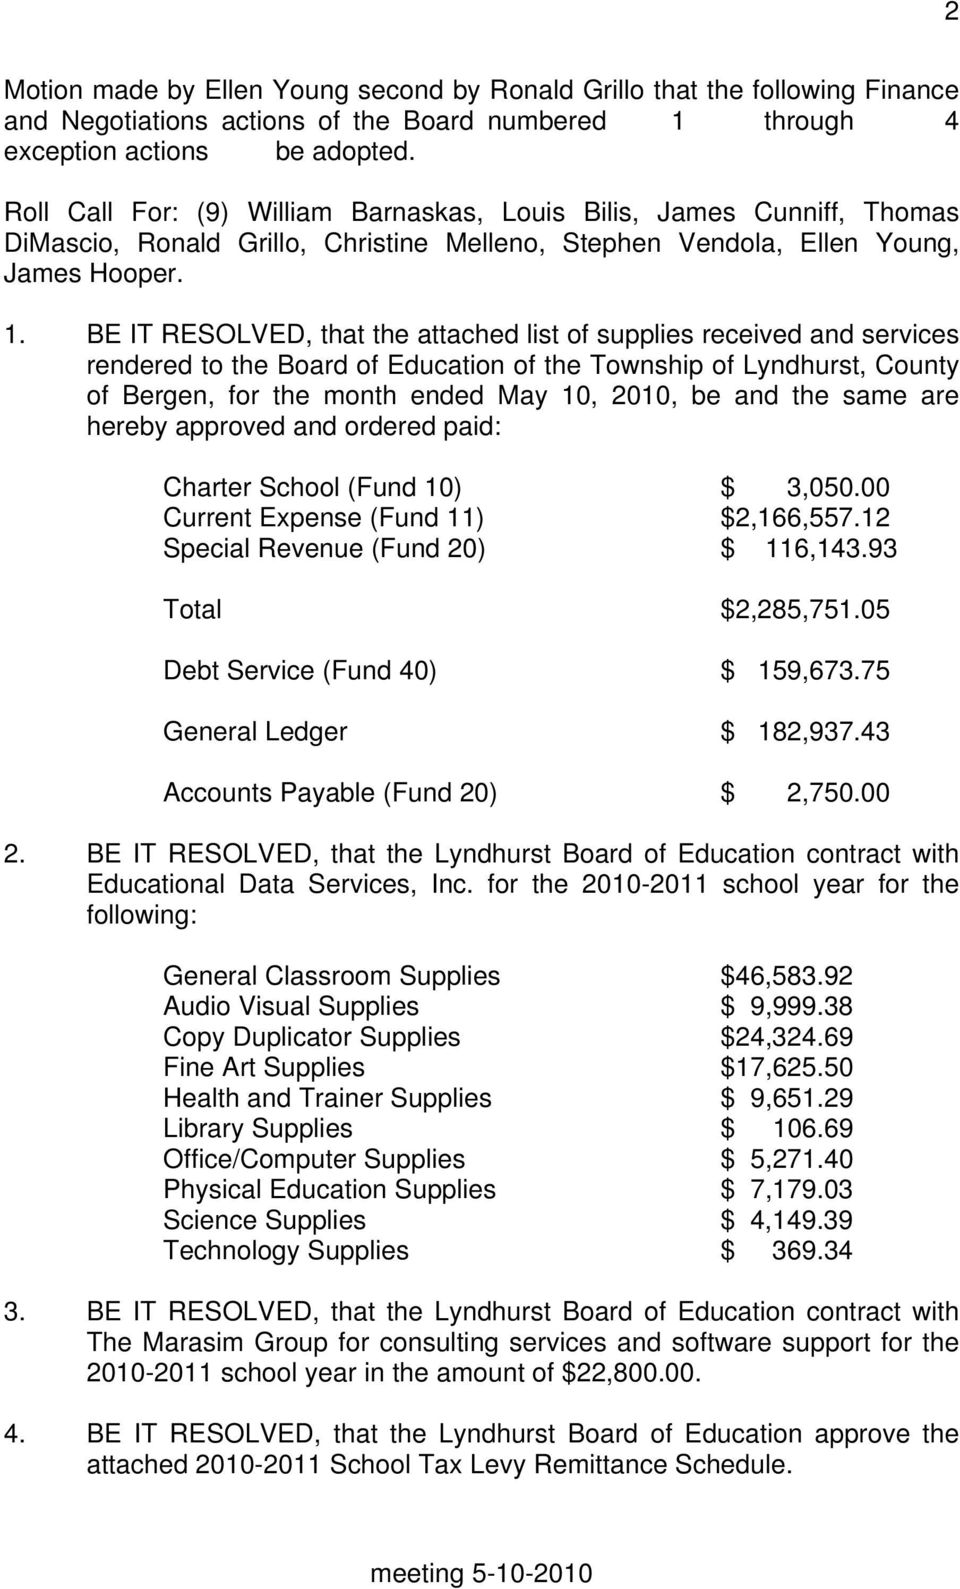 BE IT RESOLVED, that the attached list of supplies received and services rendered to the Board of Education of the Township of Lyndhurst, County of Bergen, for the month ended May 10, 2010, be and